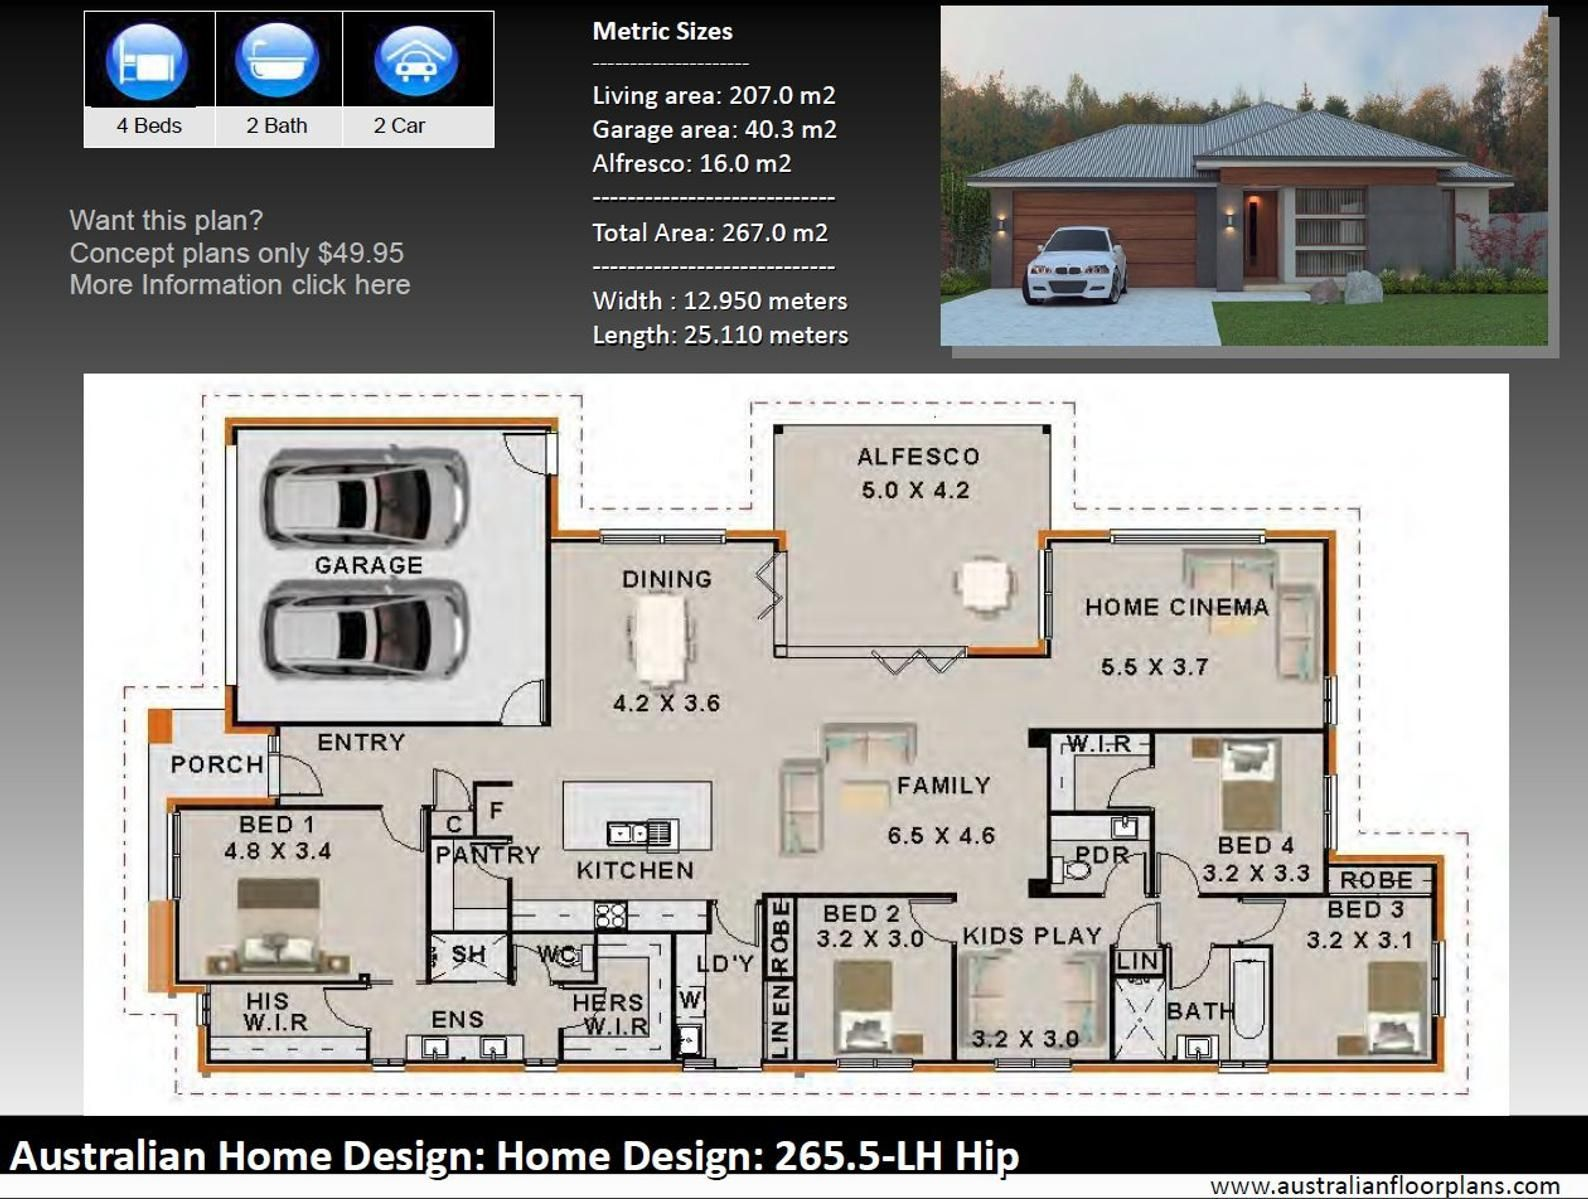 4 Bedroom House Designs Australian And International Home Etsy In 2021 Brick House Plans Bedroom House Plans Single Level House Plans